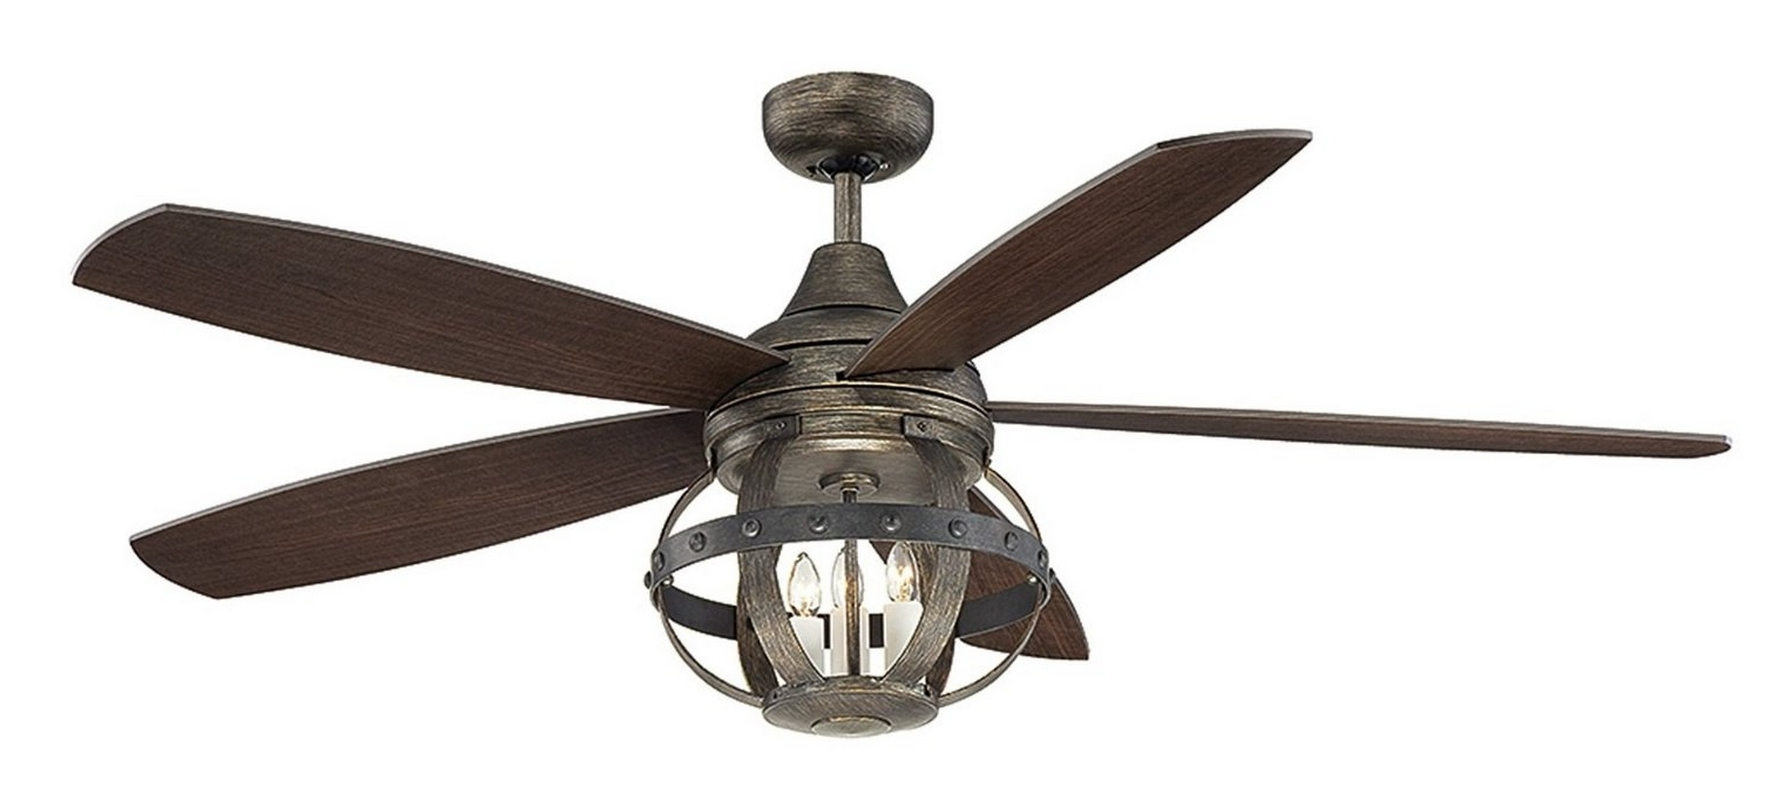 2019 Industrial Outdoor Ceiling Fan With Light Industrial Outdoor Ceiling In Industrial Outdoor Ceiling Fans With Light (View 1 of 20)